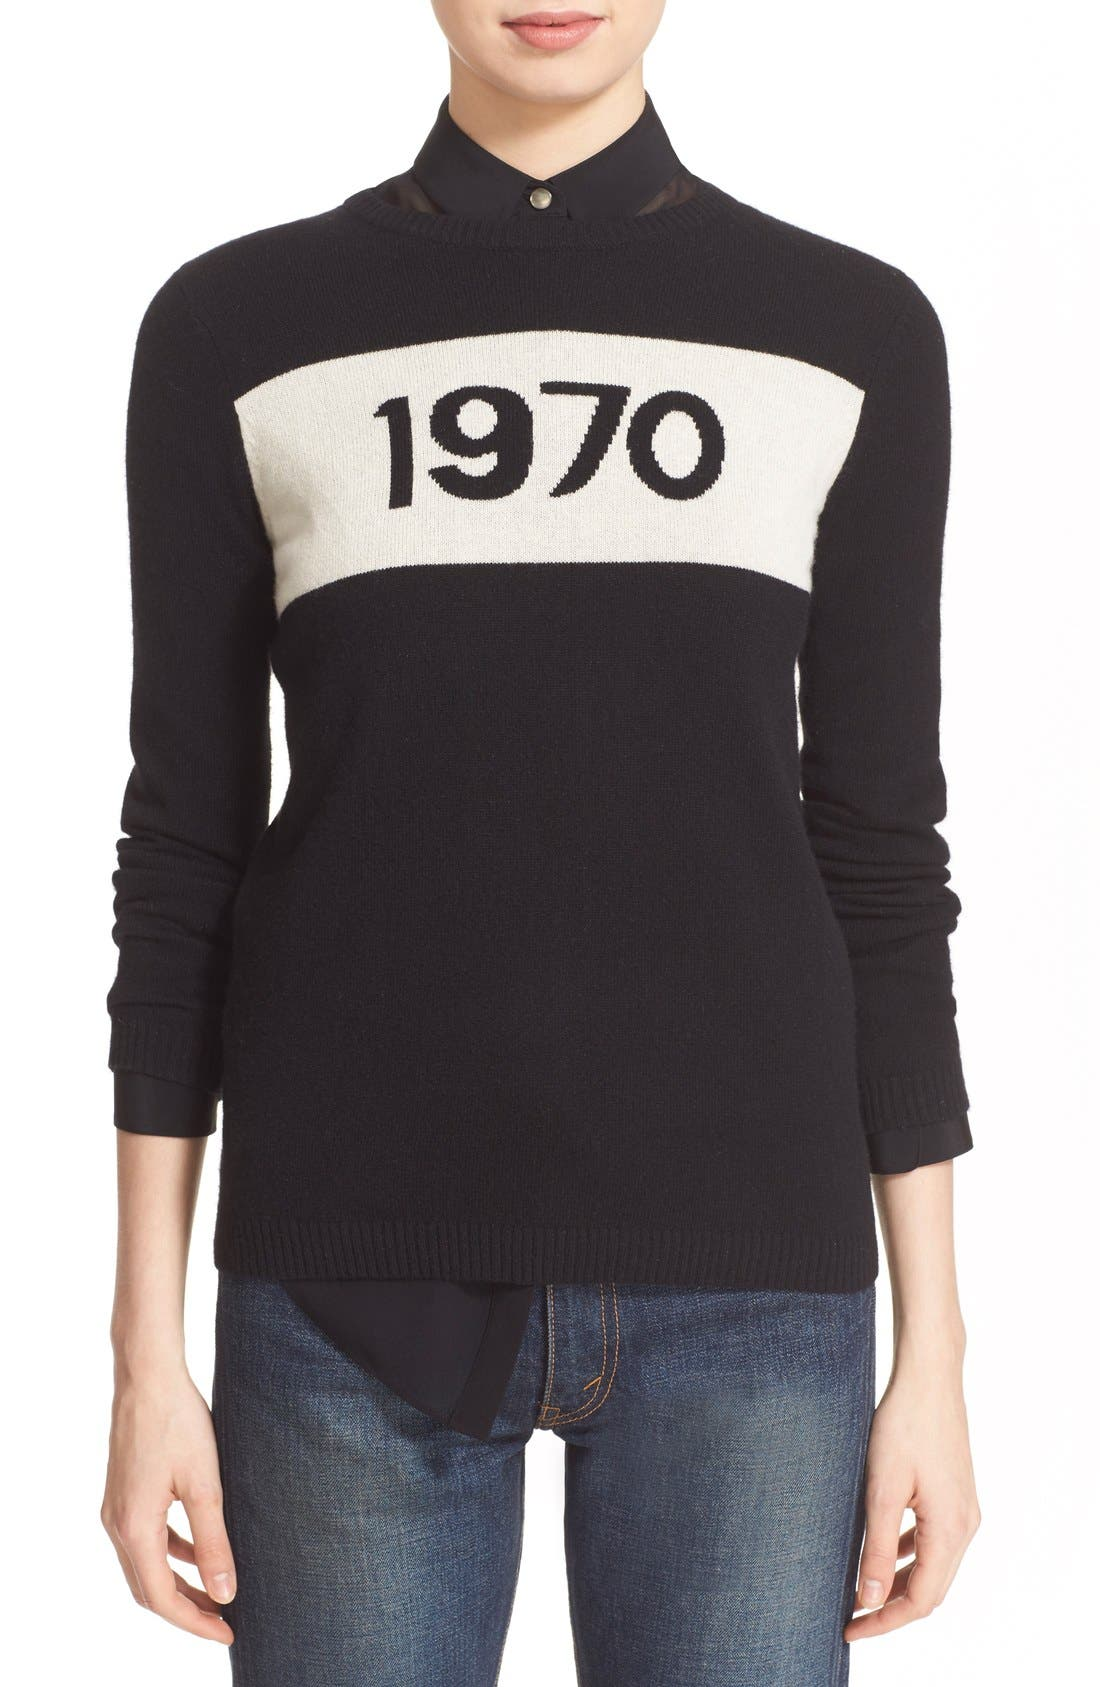 '1970' Wool Sweater,                             Main thumbnail 1, color,                             Black